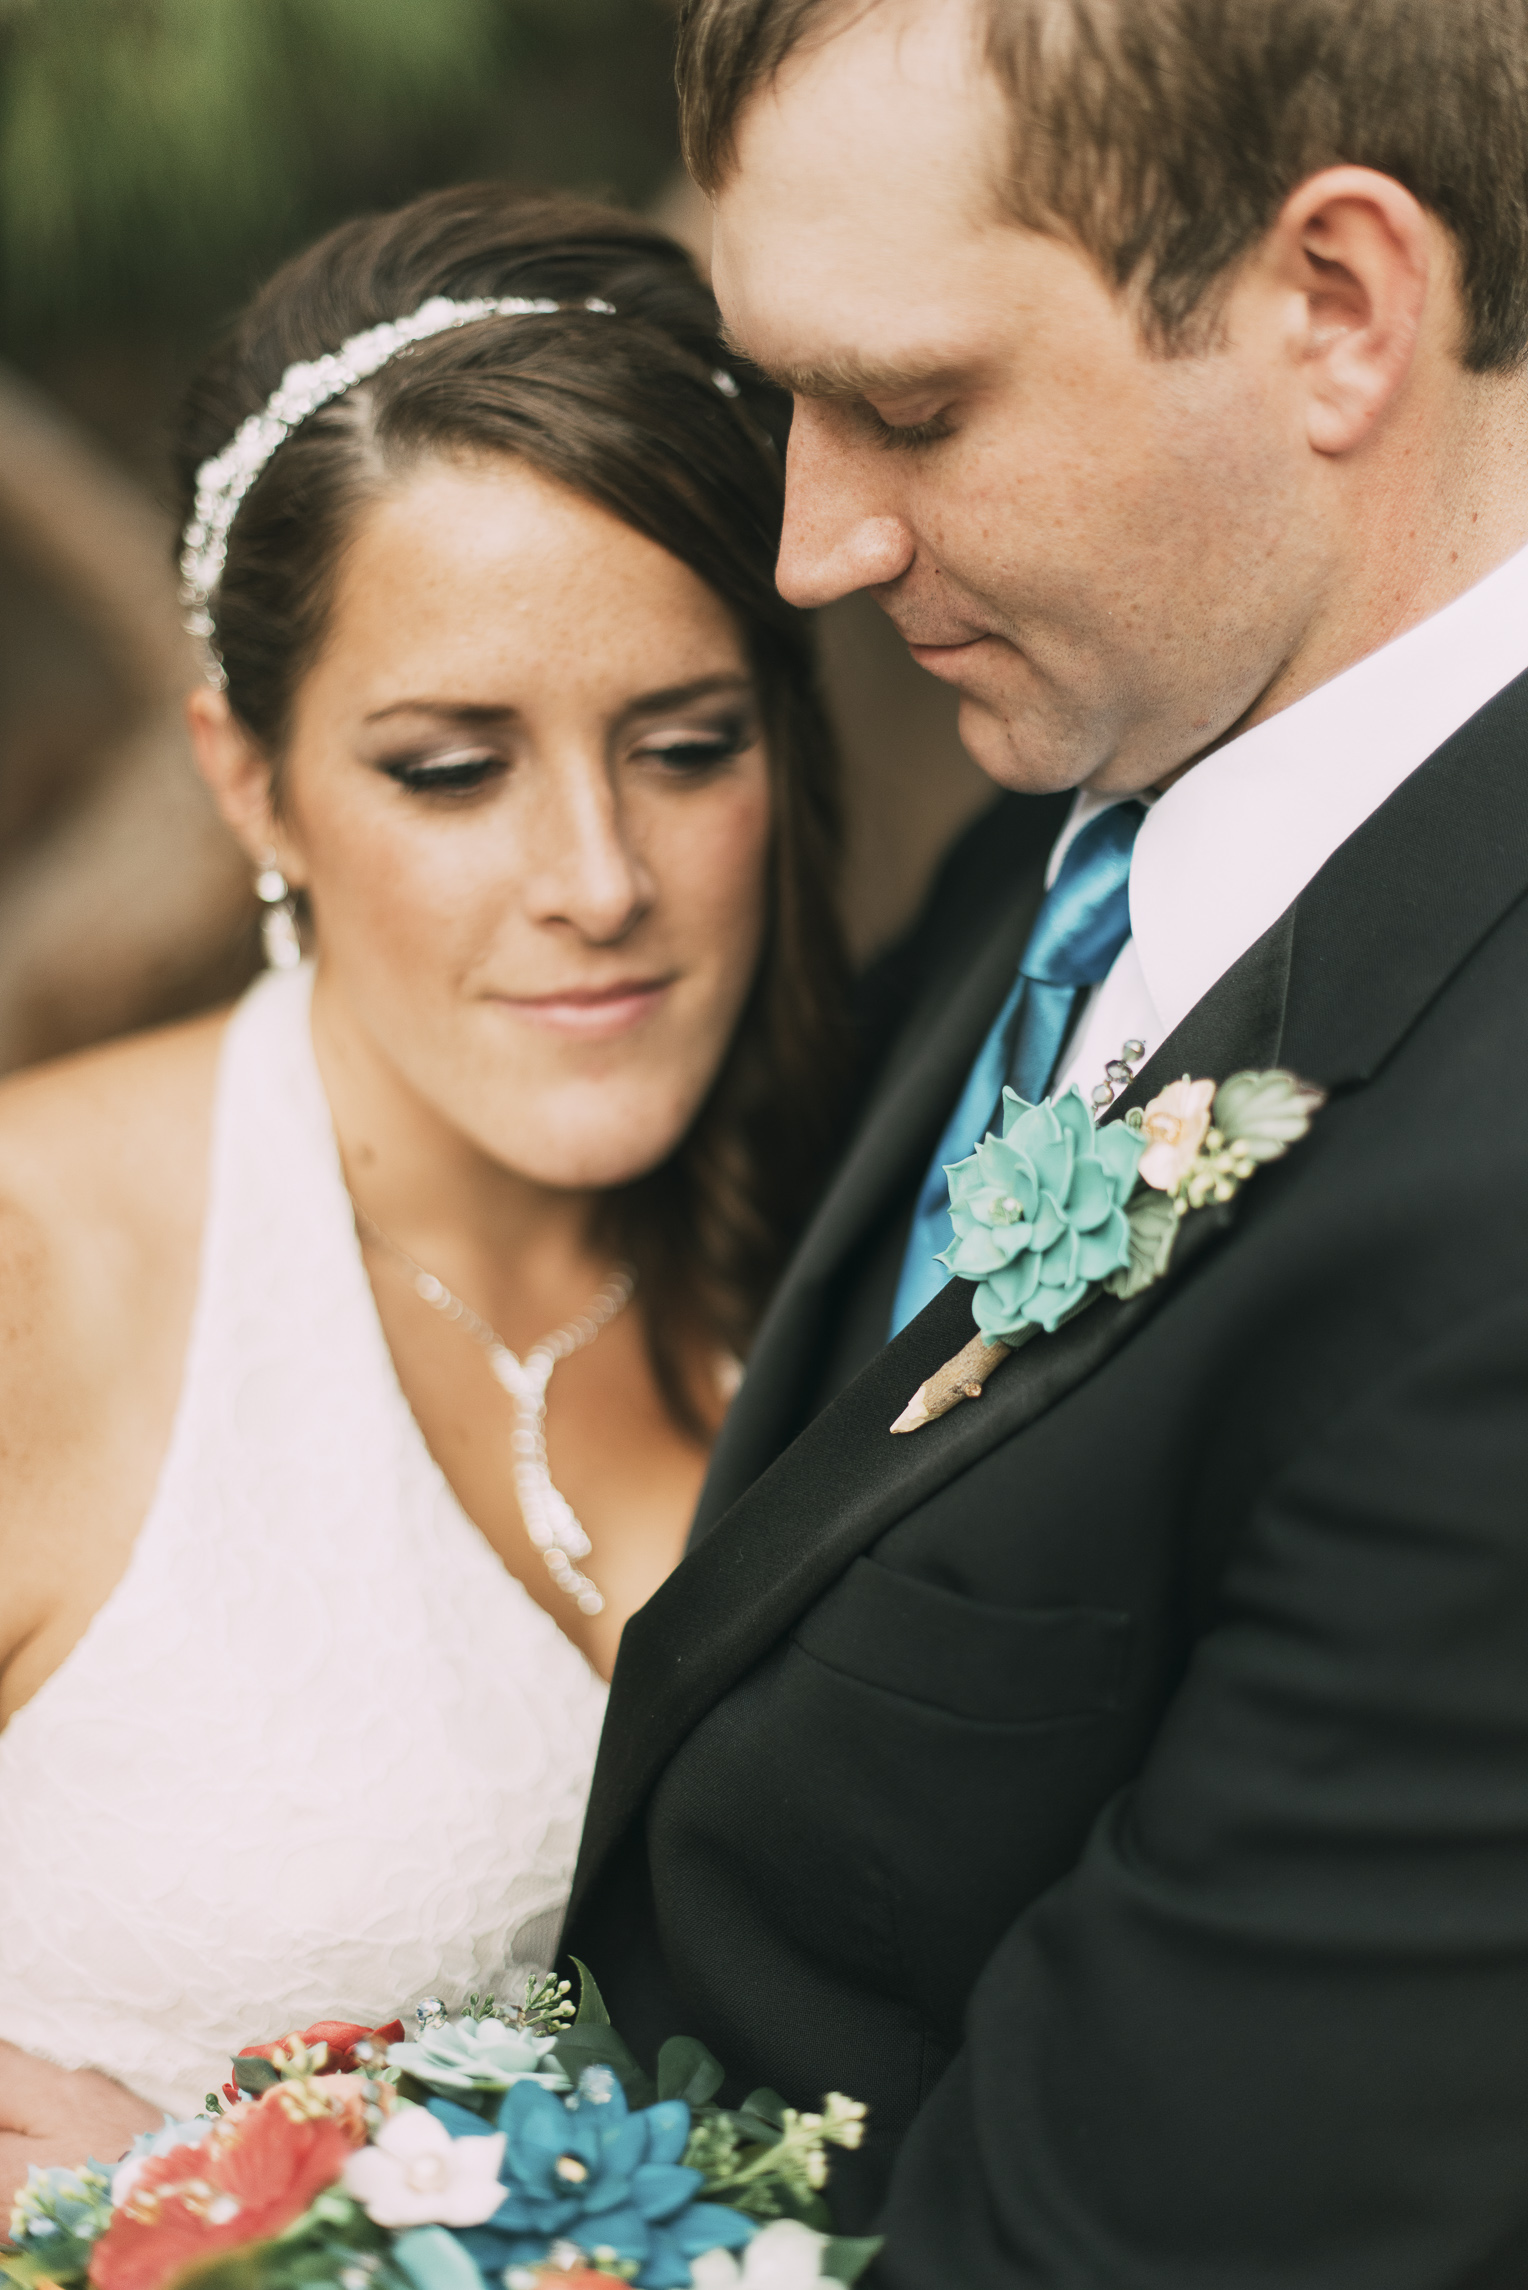 050416MATT & MICHELLE STARK WEDDING - DEBI RAE PHOTOGRAPHY-29.jpg